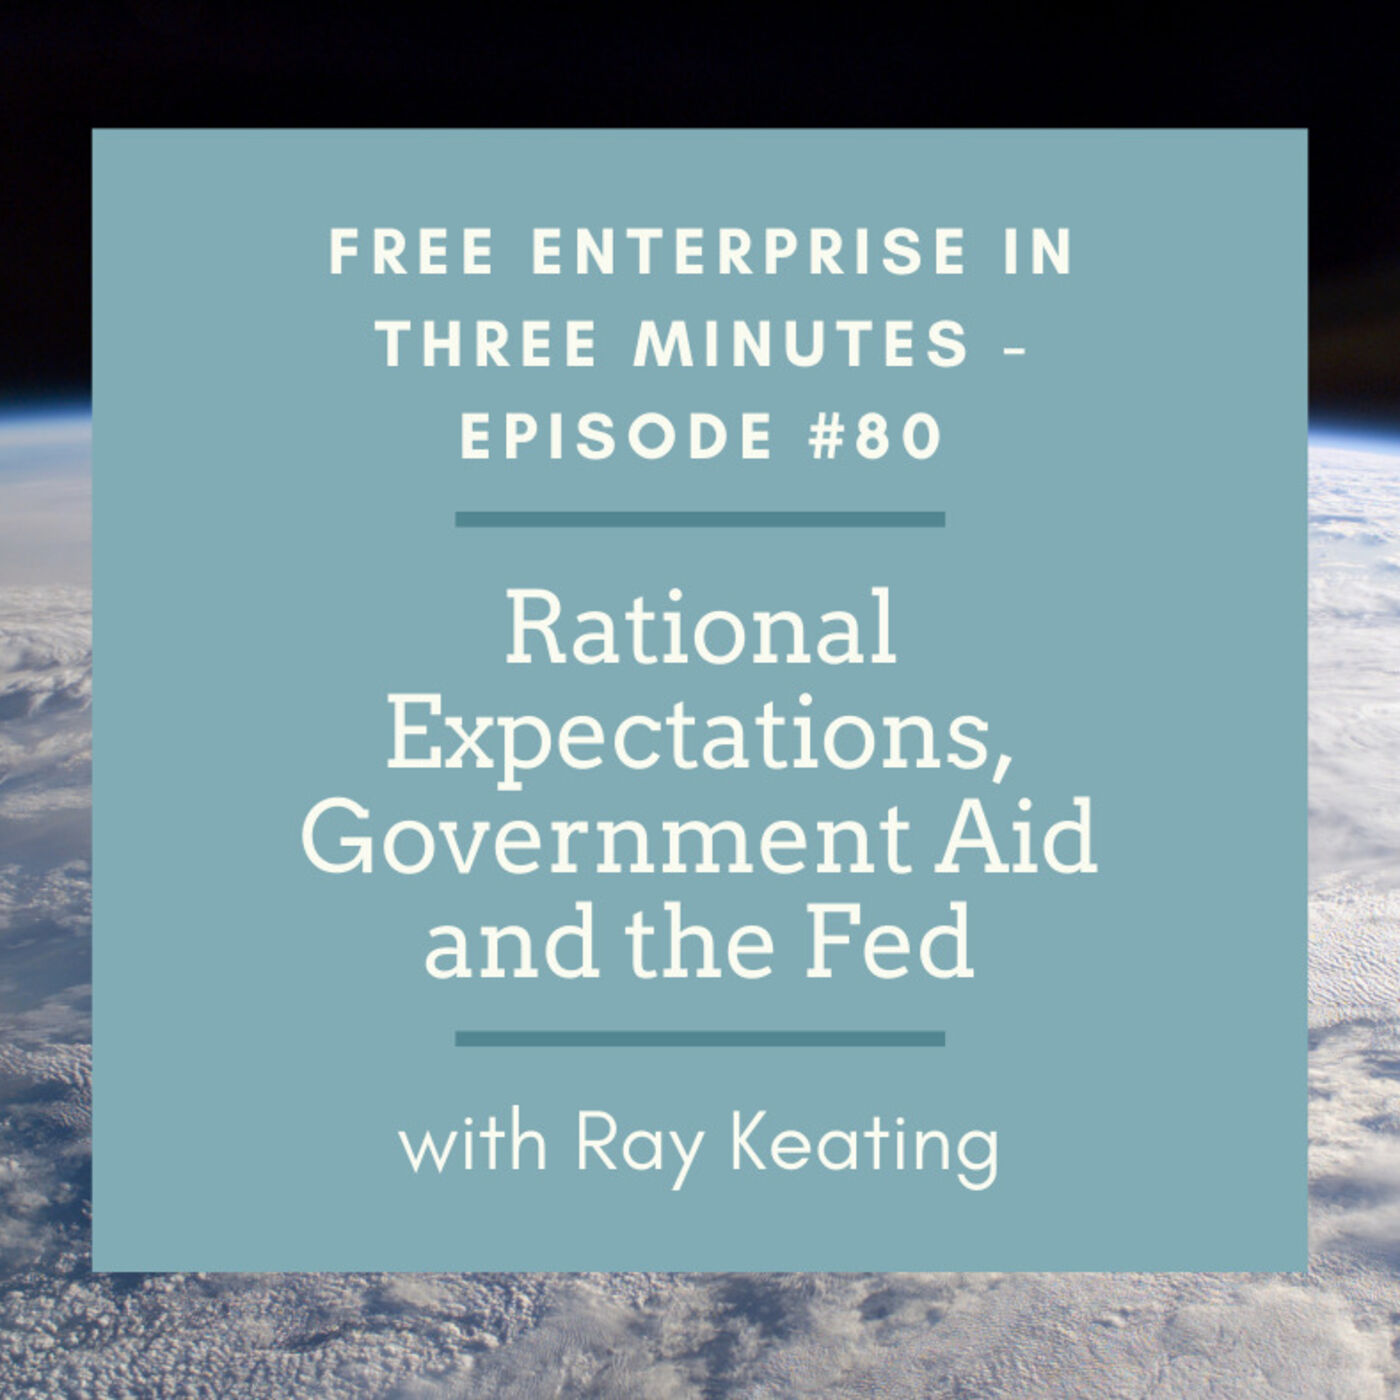 Episode #80: Rational Expectations, Government Aid and the Fed